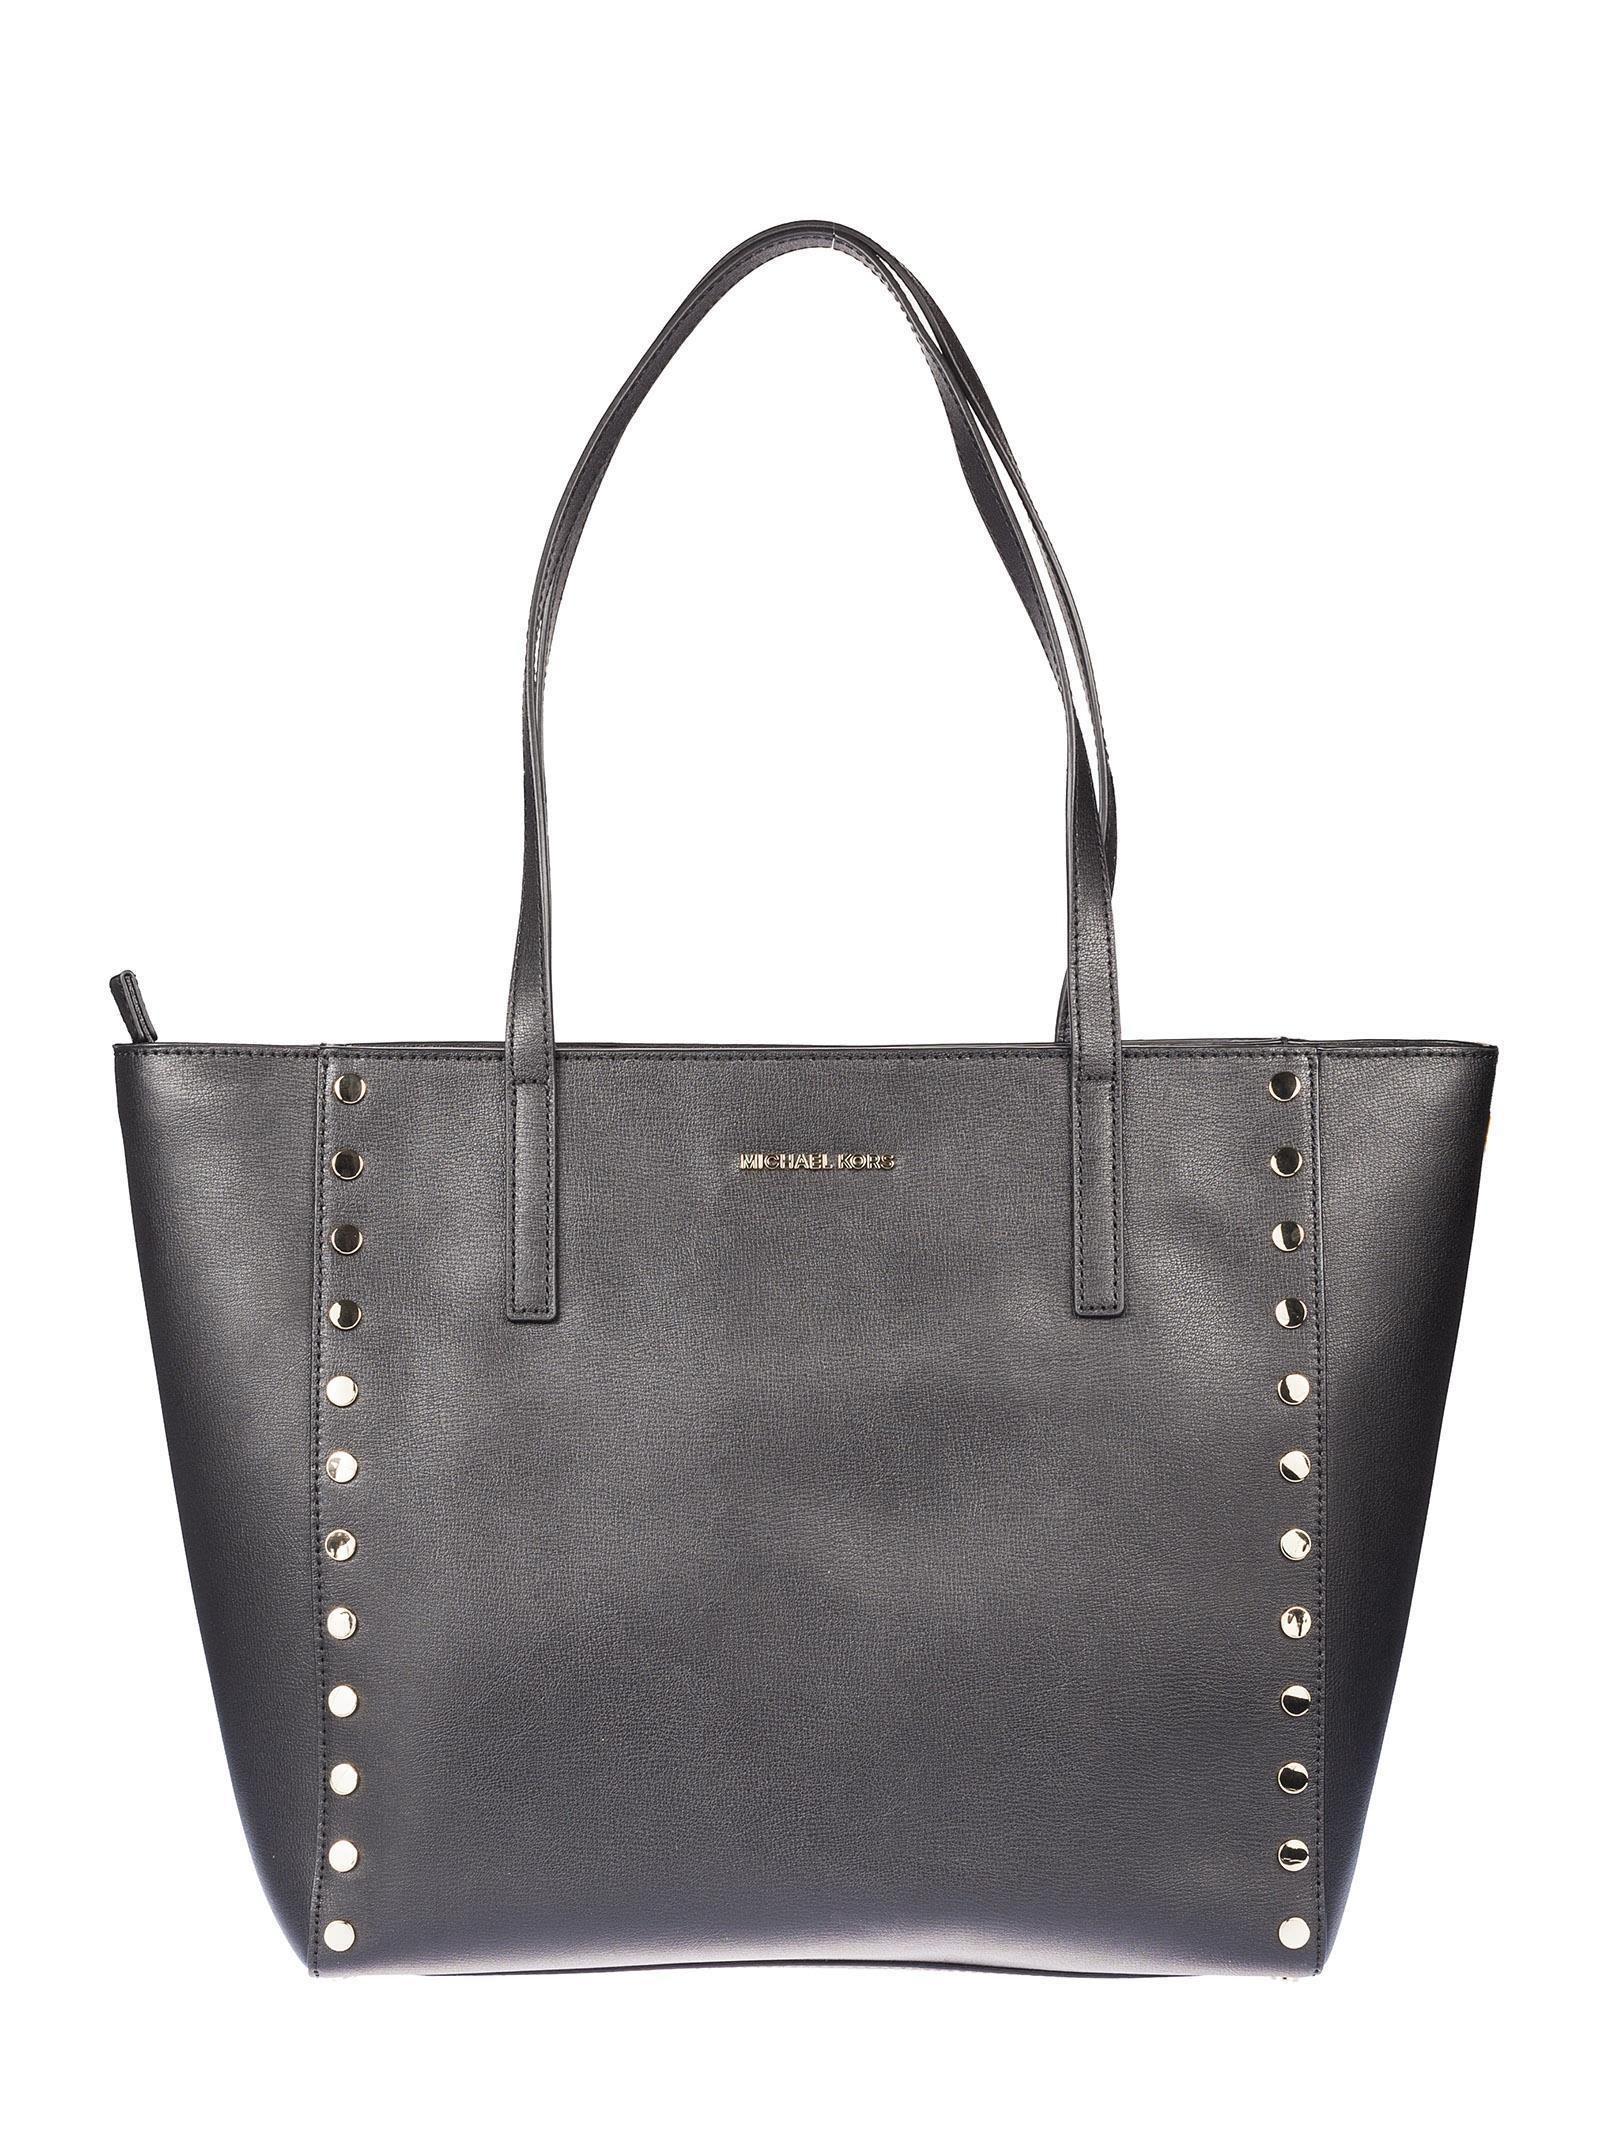 送料込 Michael Kors Rivington Large Studded Tote バッグ